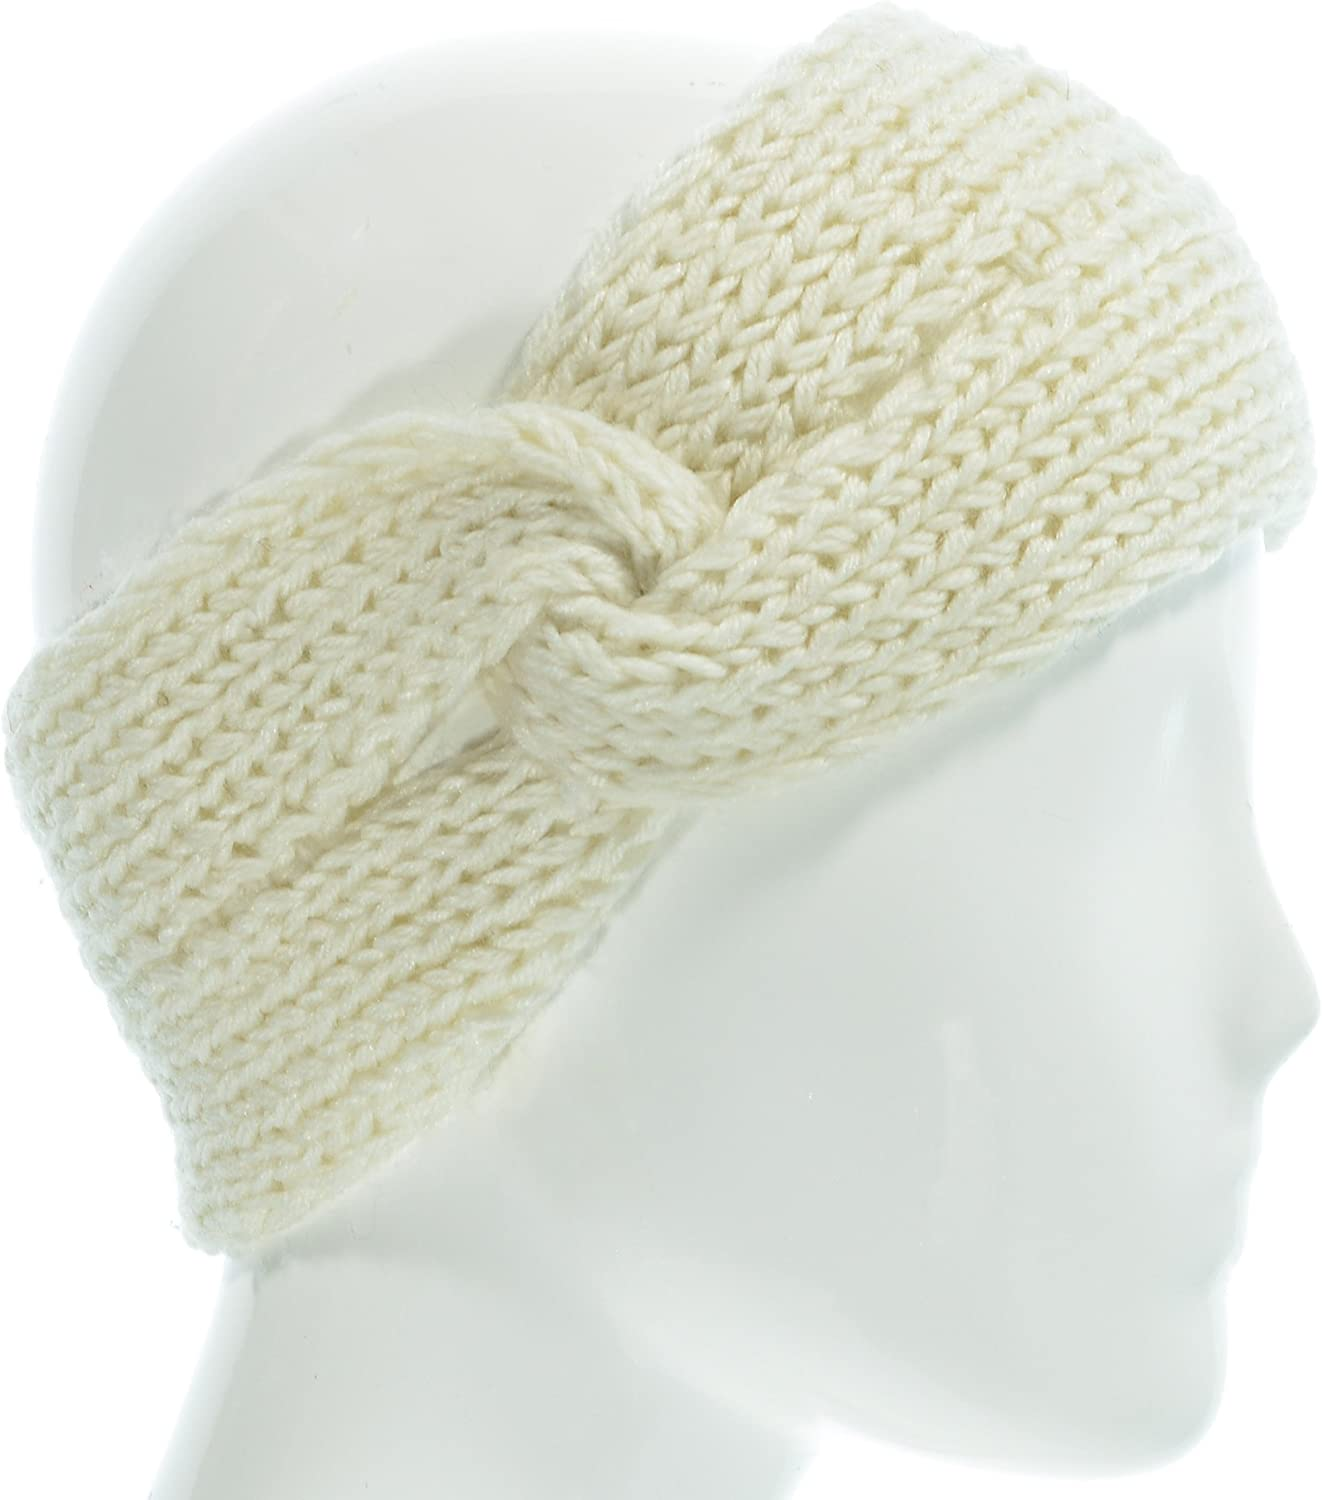 Hand By Hand Solid Knot Knitted Headband Twist Cozy Headwrap Chic Stylish